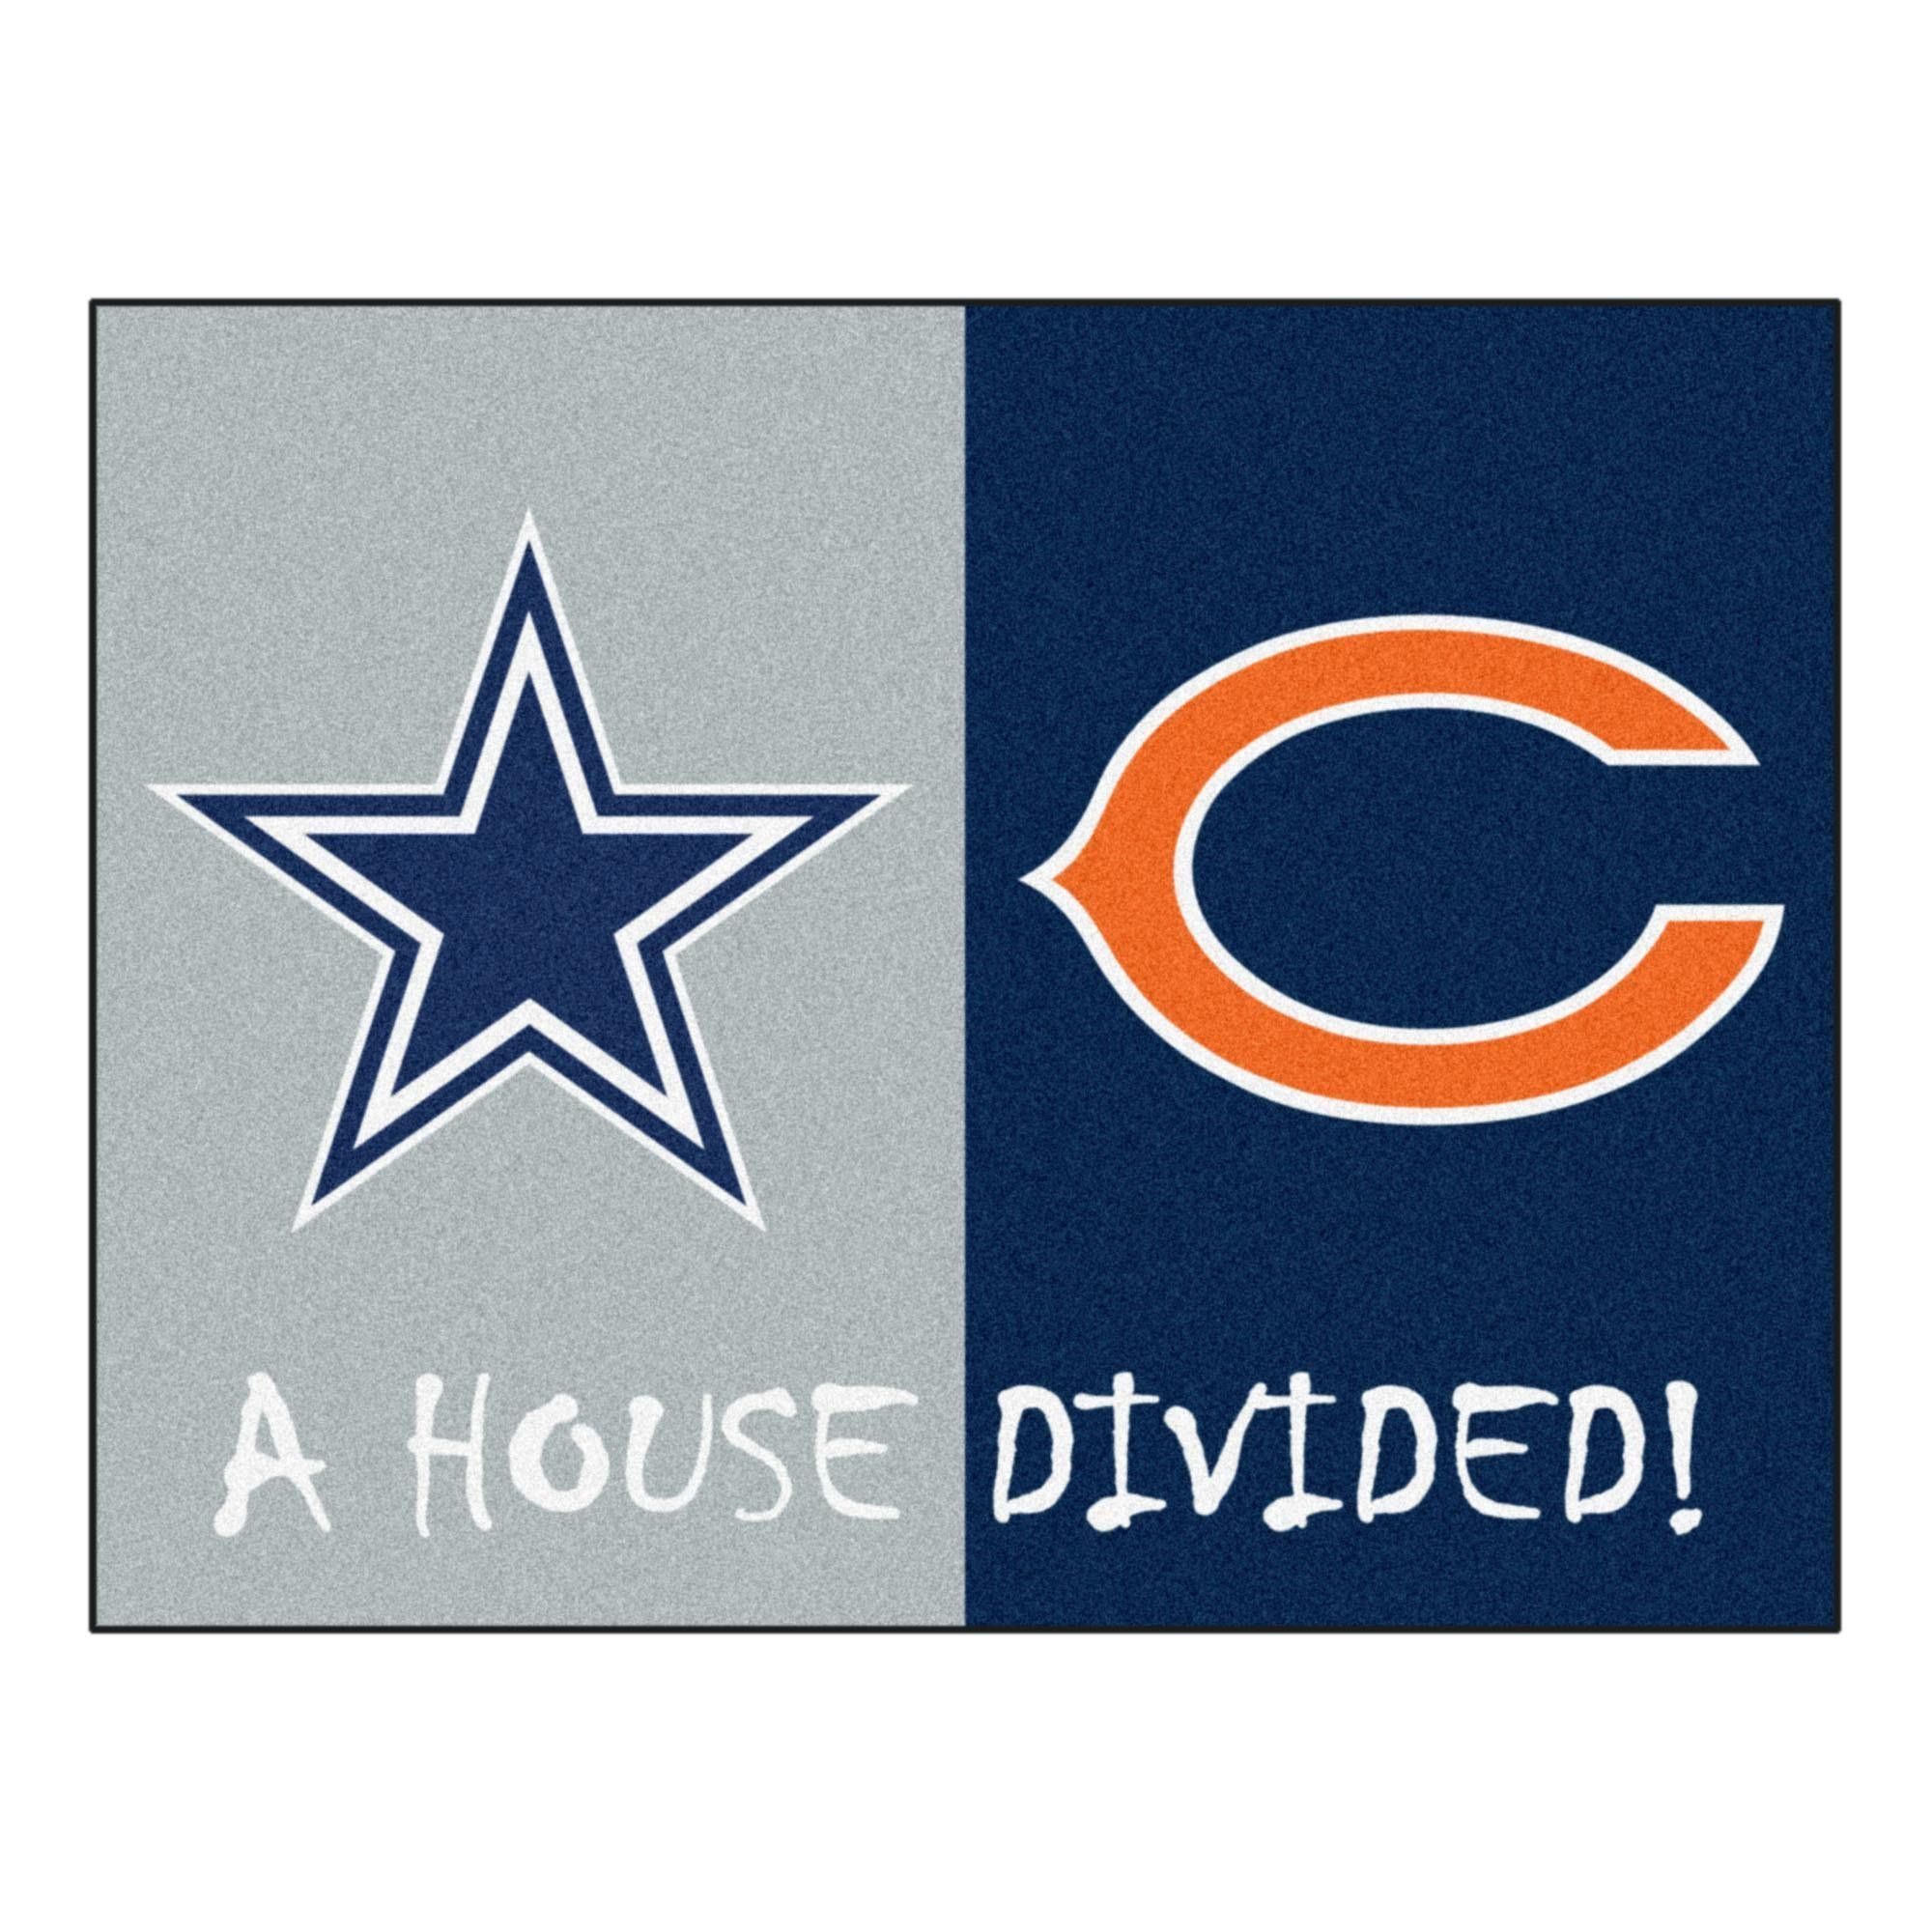 Dallas Cowboys Chicago Bears Nfl House Divided Rugs 33 75x42 5 Cowboys Bears House Divided Cowboys Vs